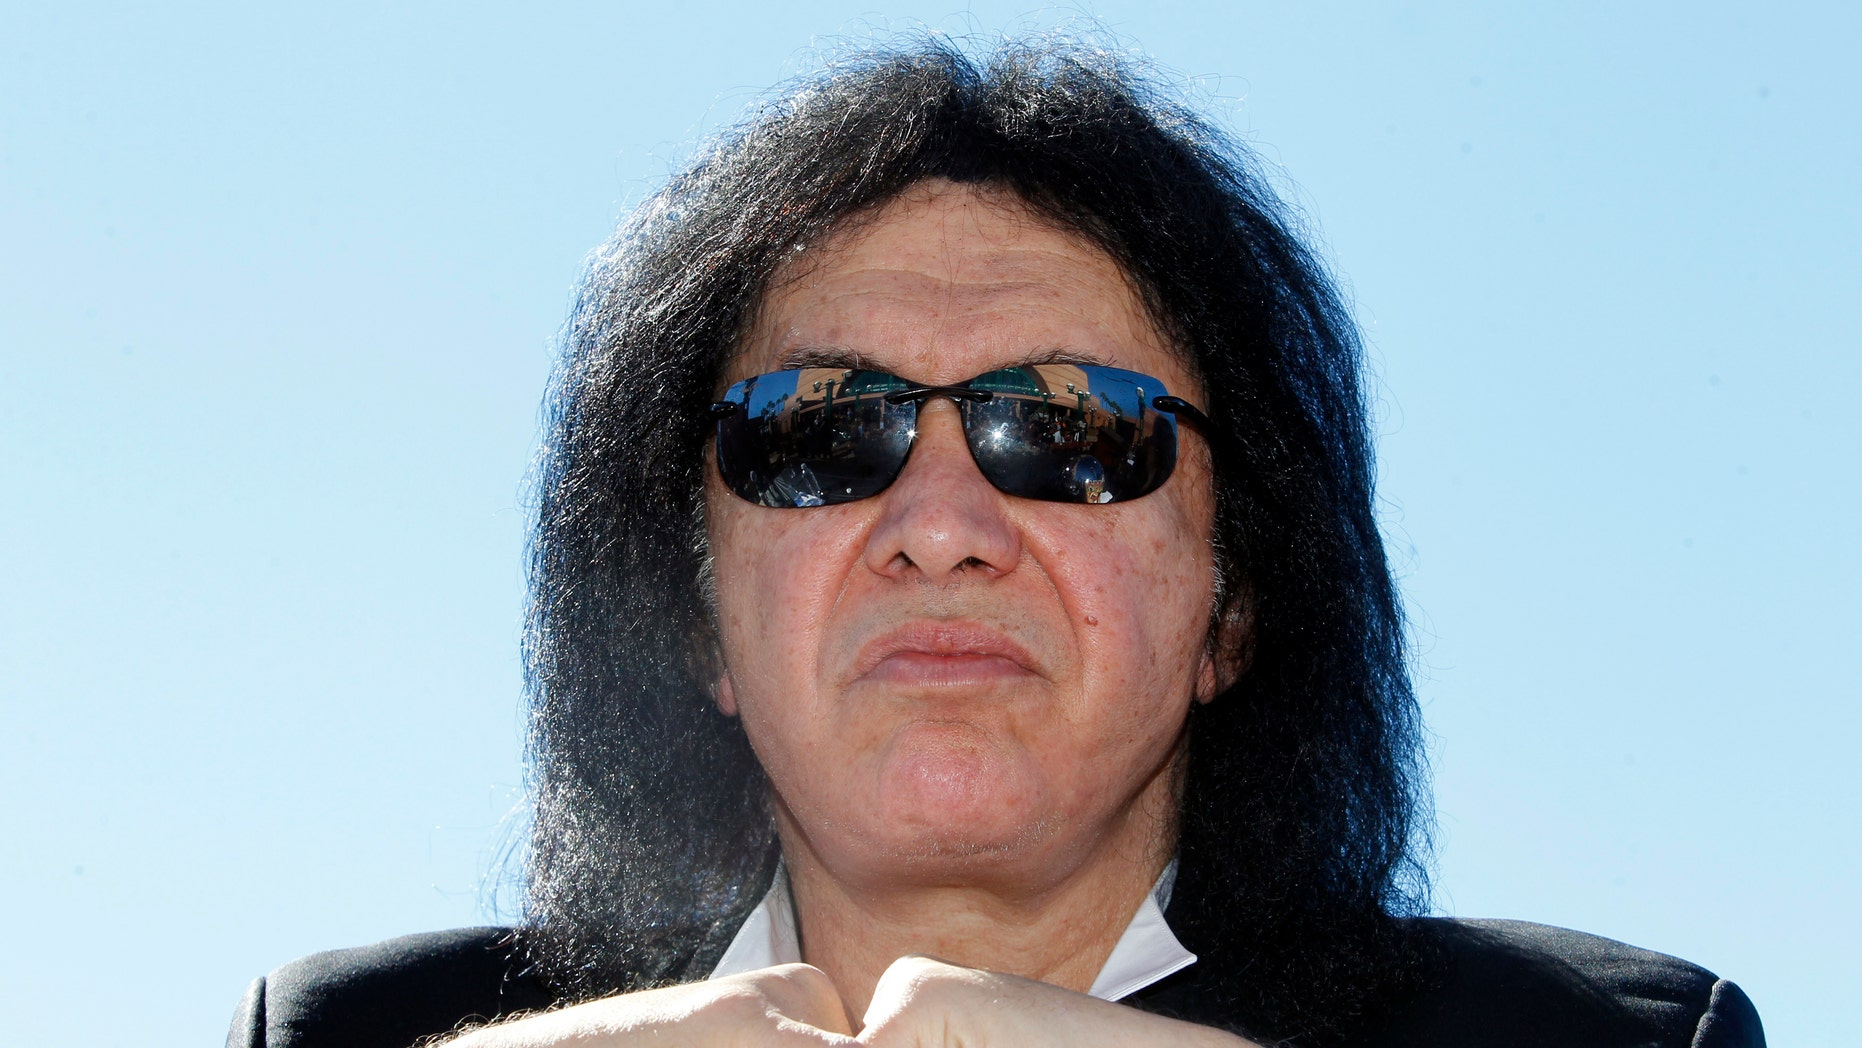 March 10, 2014: Musician Gene Simmons of rock band KISS attends a news conference to announce his part-ownership of Arena Football League team, the Los Angeles Kiss, in Anaheim, California.